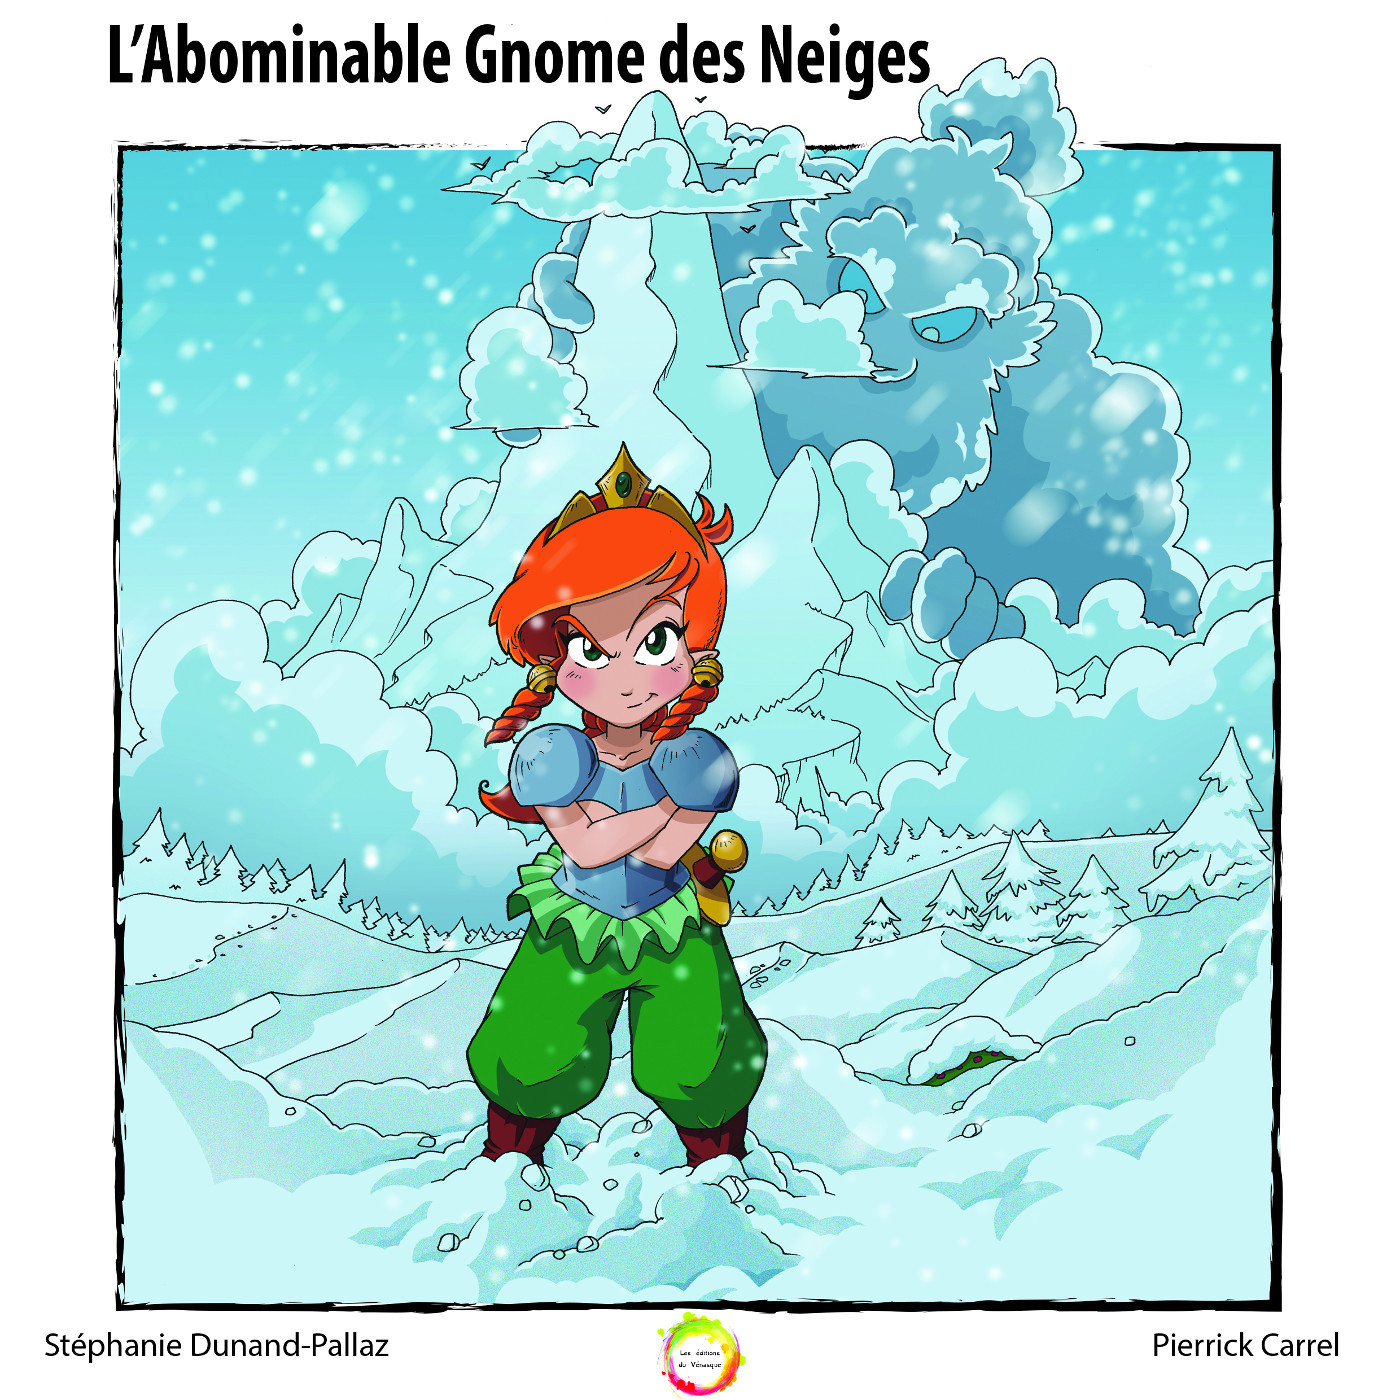 L'ABOMINABLE GNOME DES NEIGES